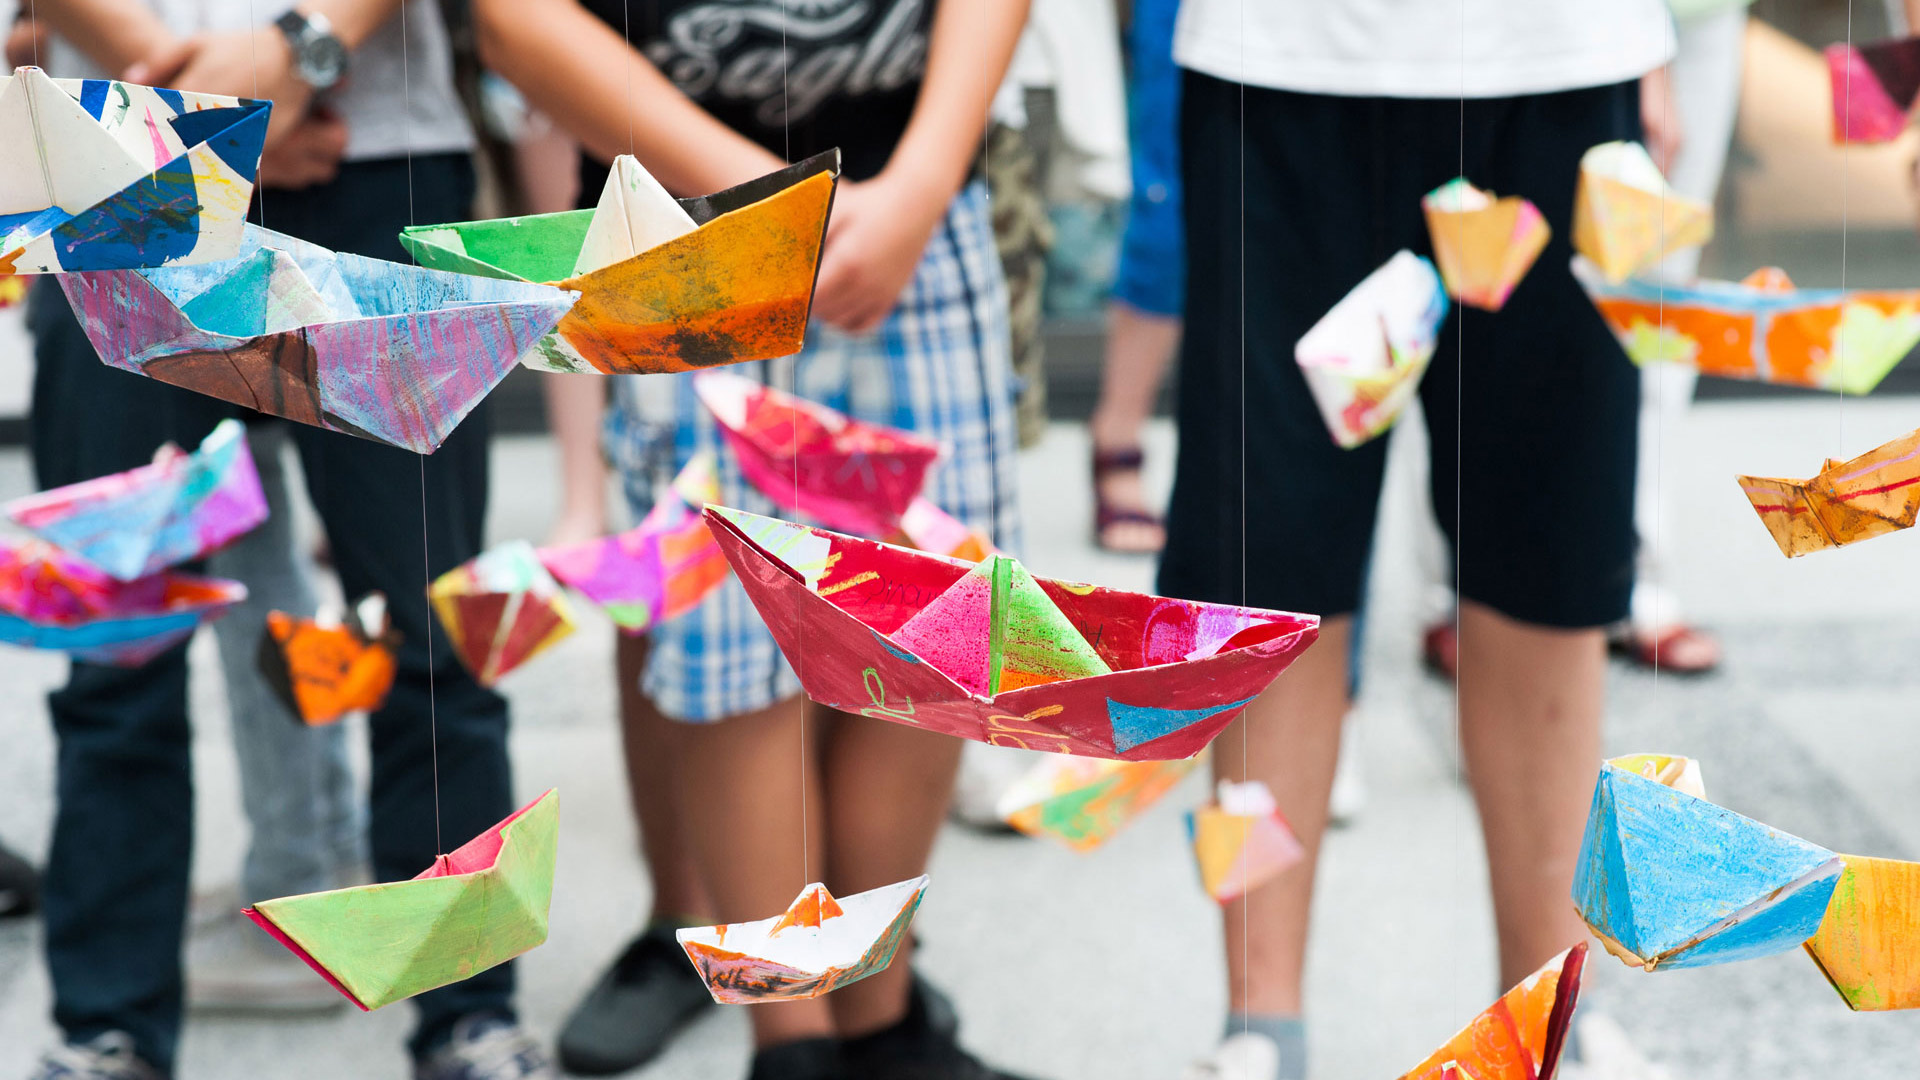 Children look at their colourful paper boats hanging on threads.